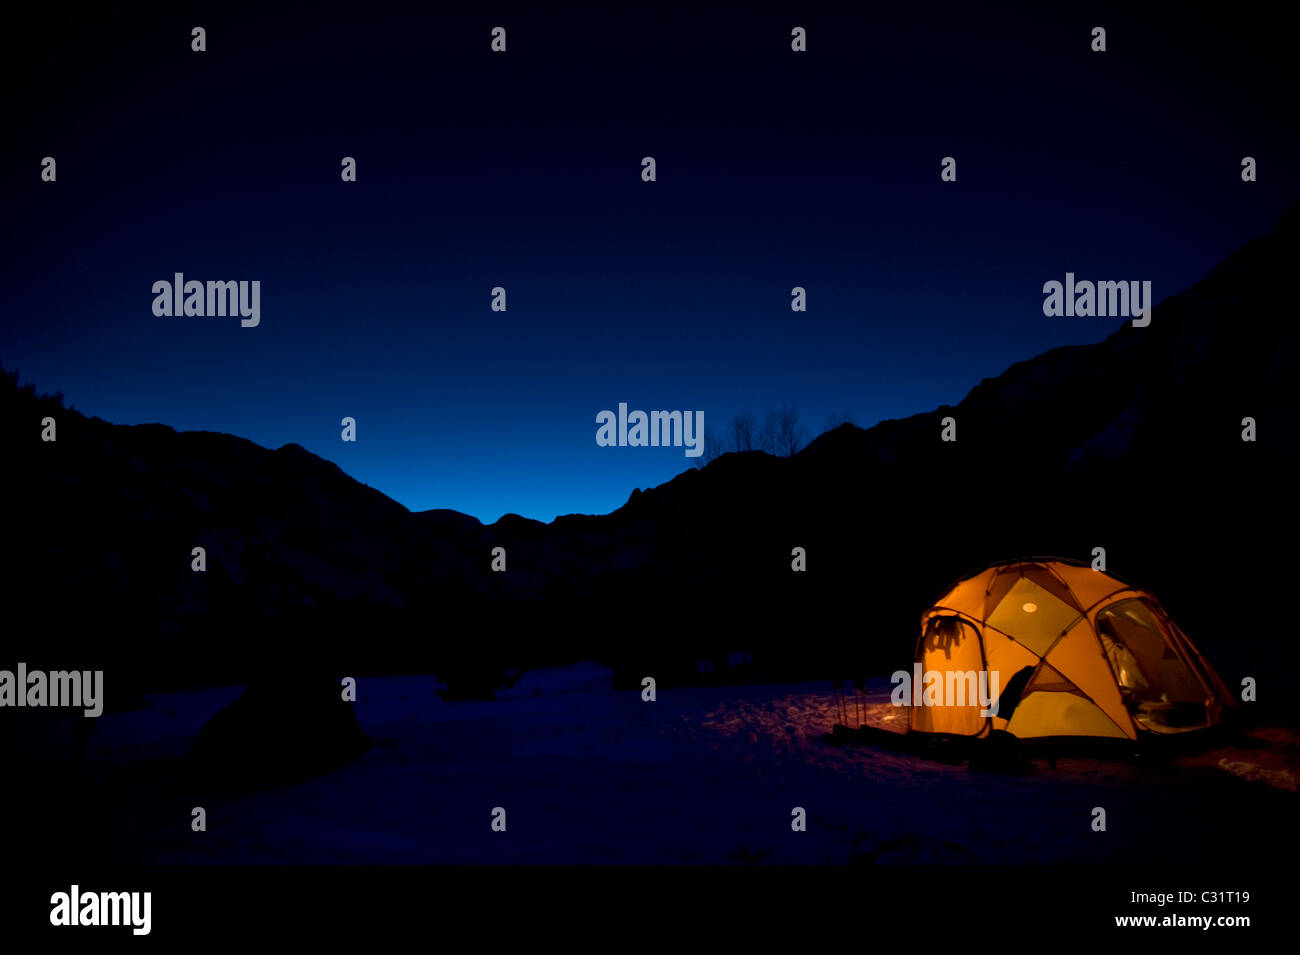 A campsite at night in the California backcountry. - Stock Image